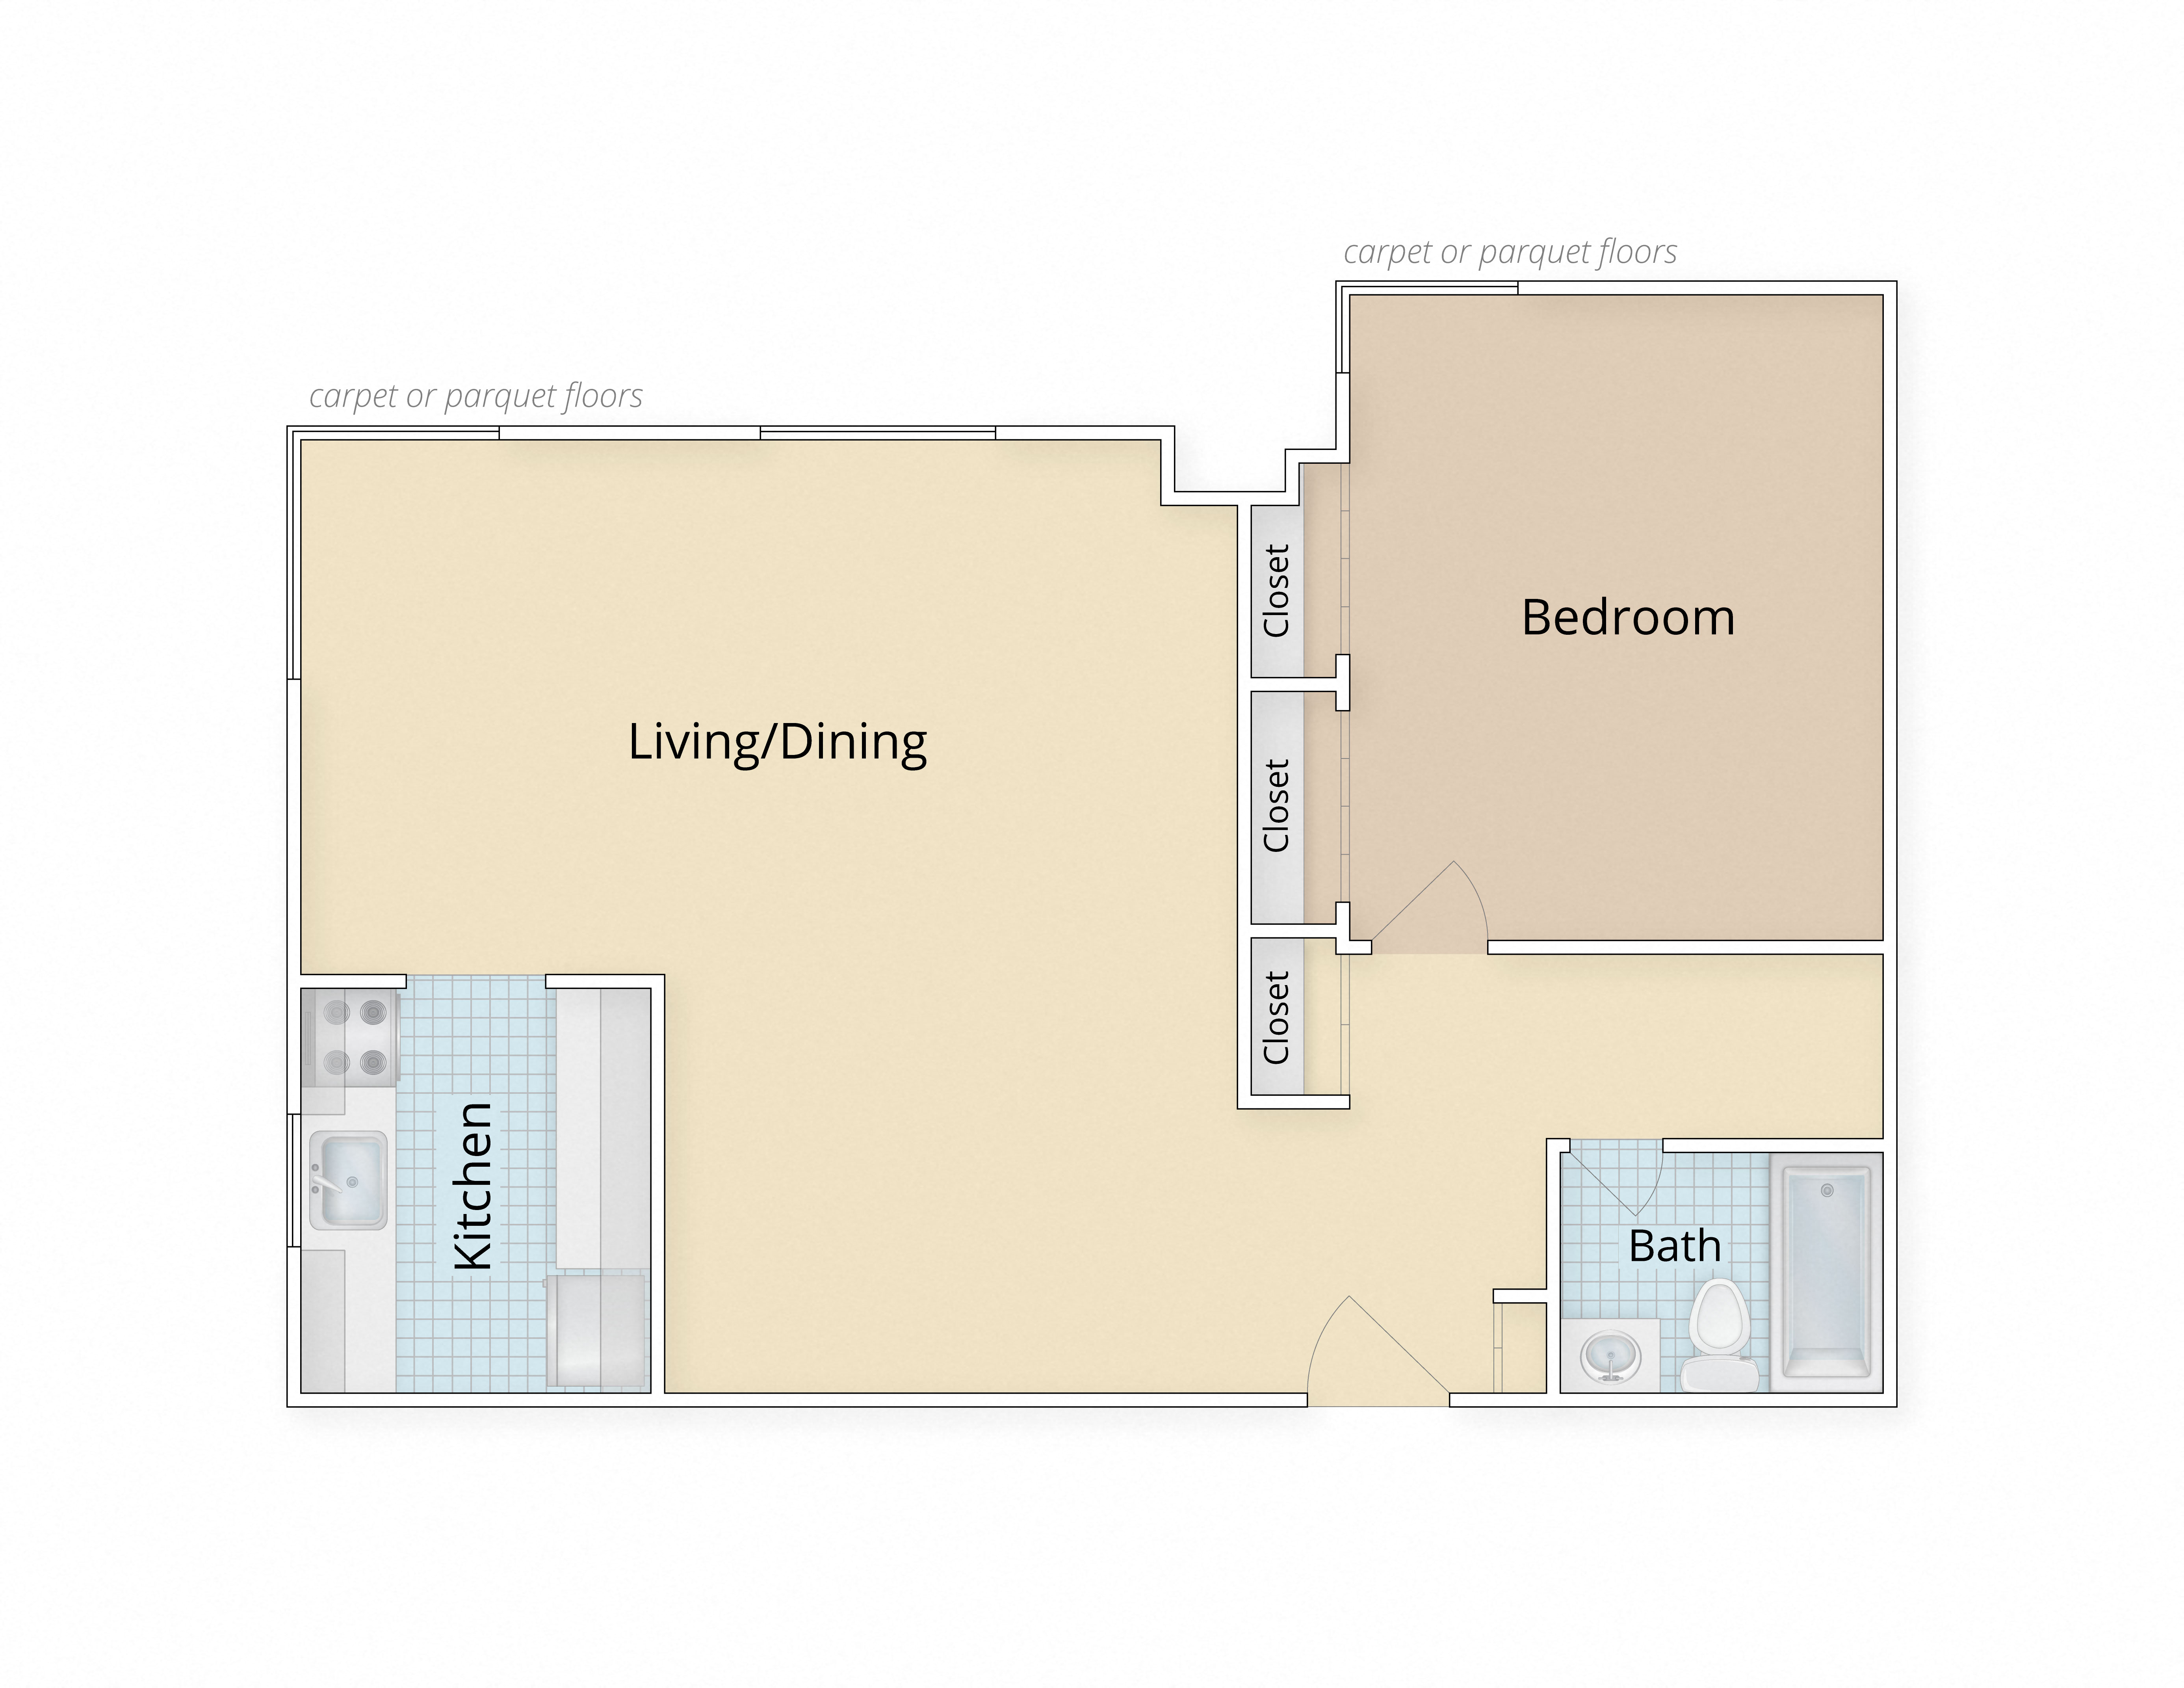 legation house apartments washington dc one bedroom floor plan. Anthology  Cortland Apartments Euclid St Nw  Camelot Square